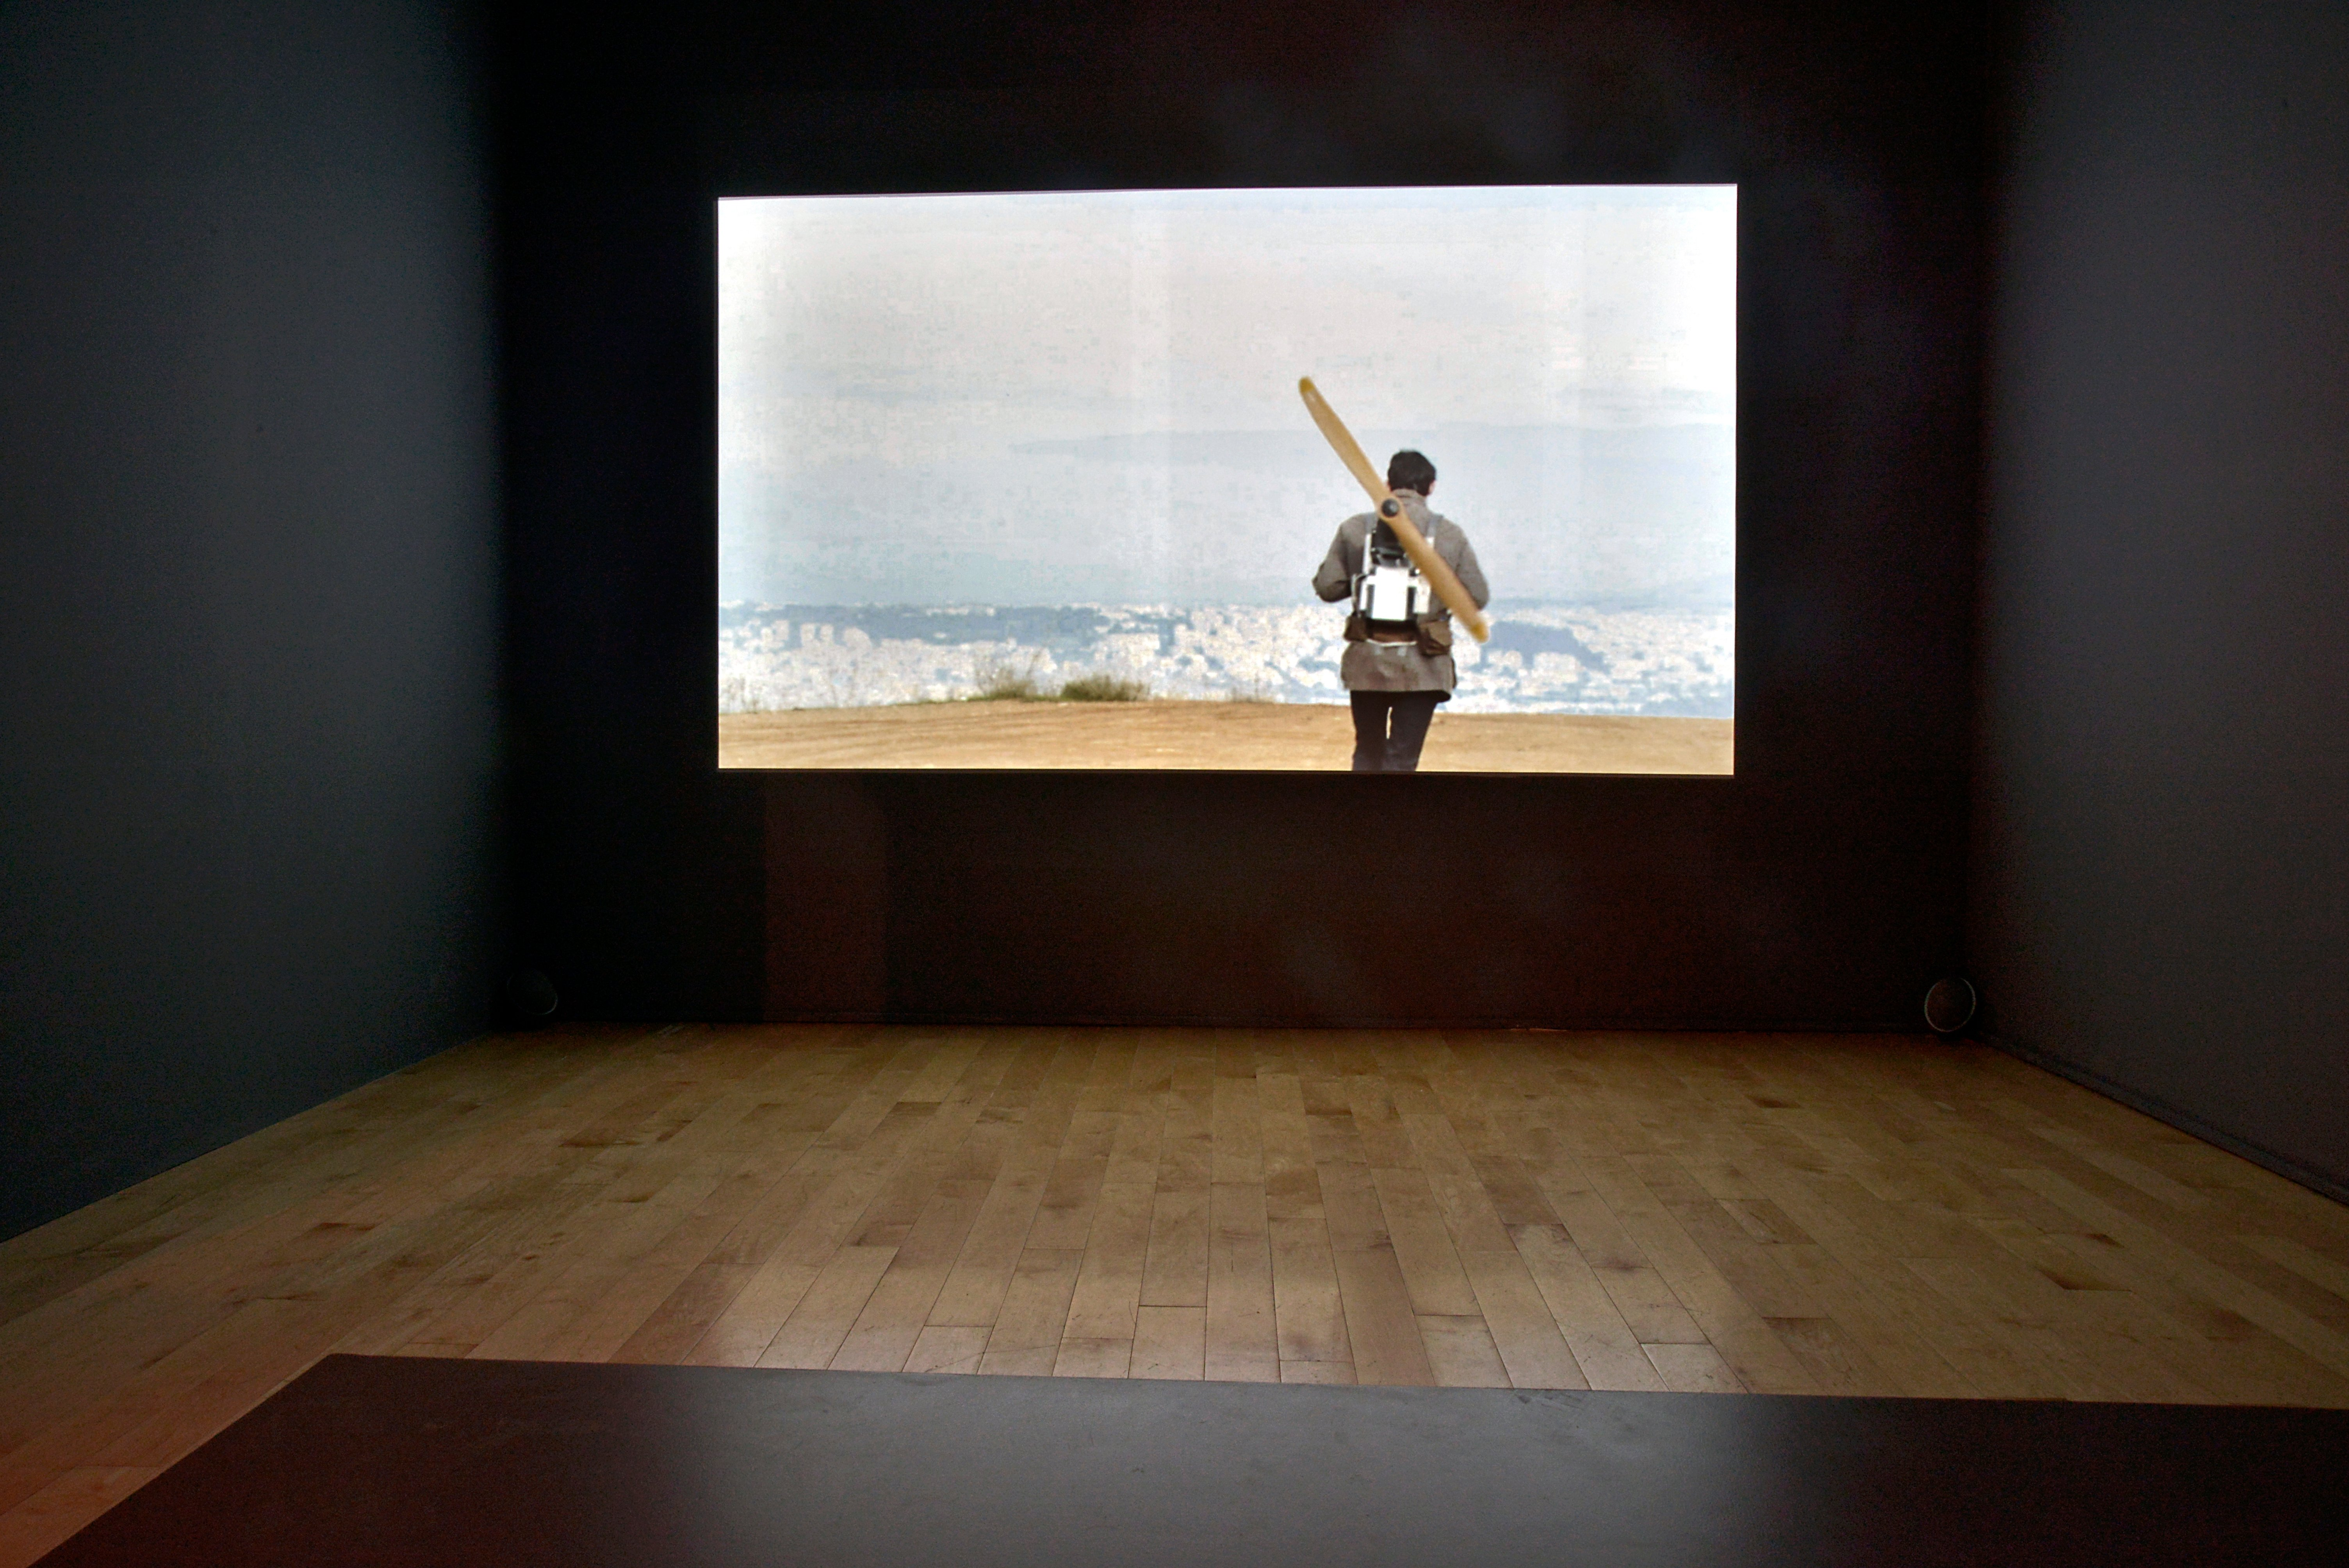 Image: Orestis Mavroudis, Attempt to Fly (2013). Exhibition view, The Equilibrists, Benaki Museum, Pireos St., Athens (June 17 – October 9, 2016). Photo © Fanis Vlastaras and Rebecca Constantopoulou.